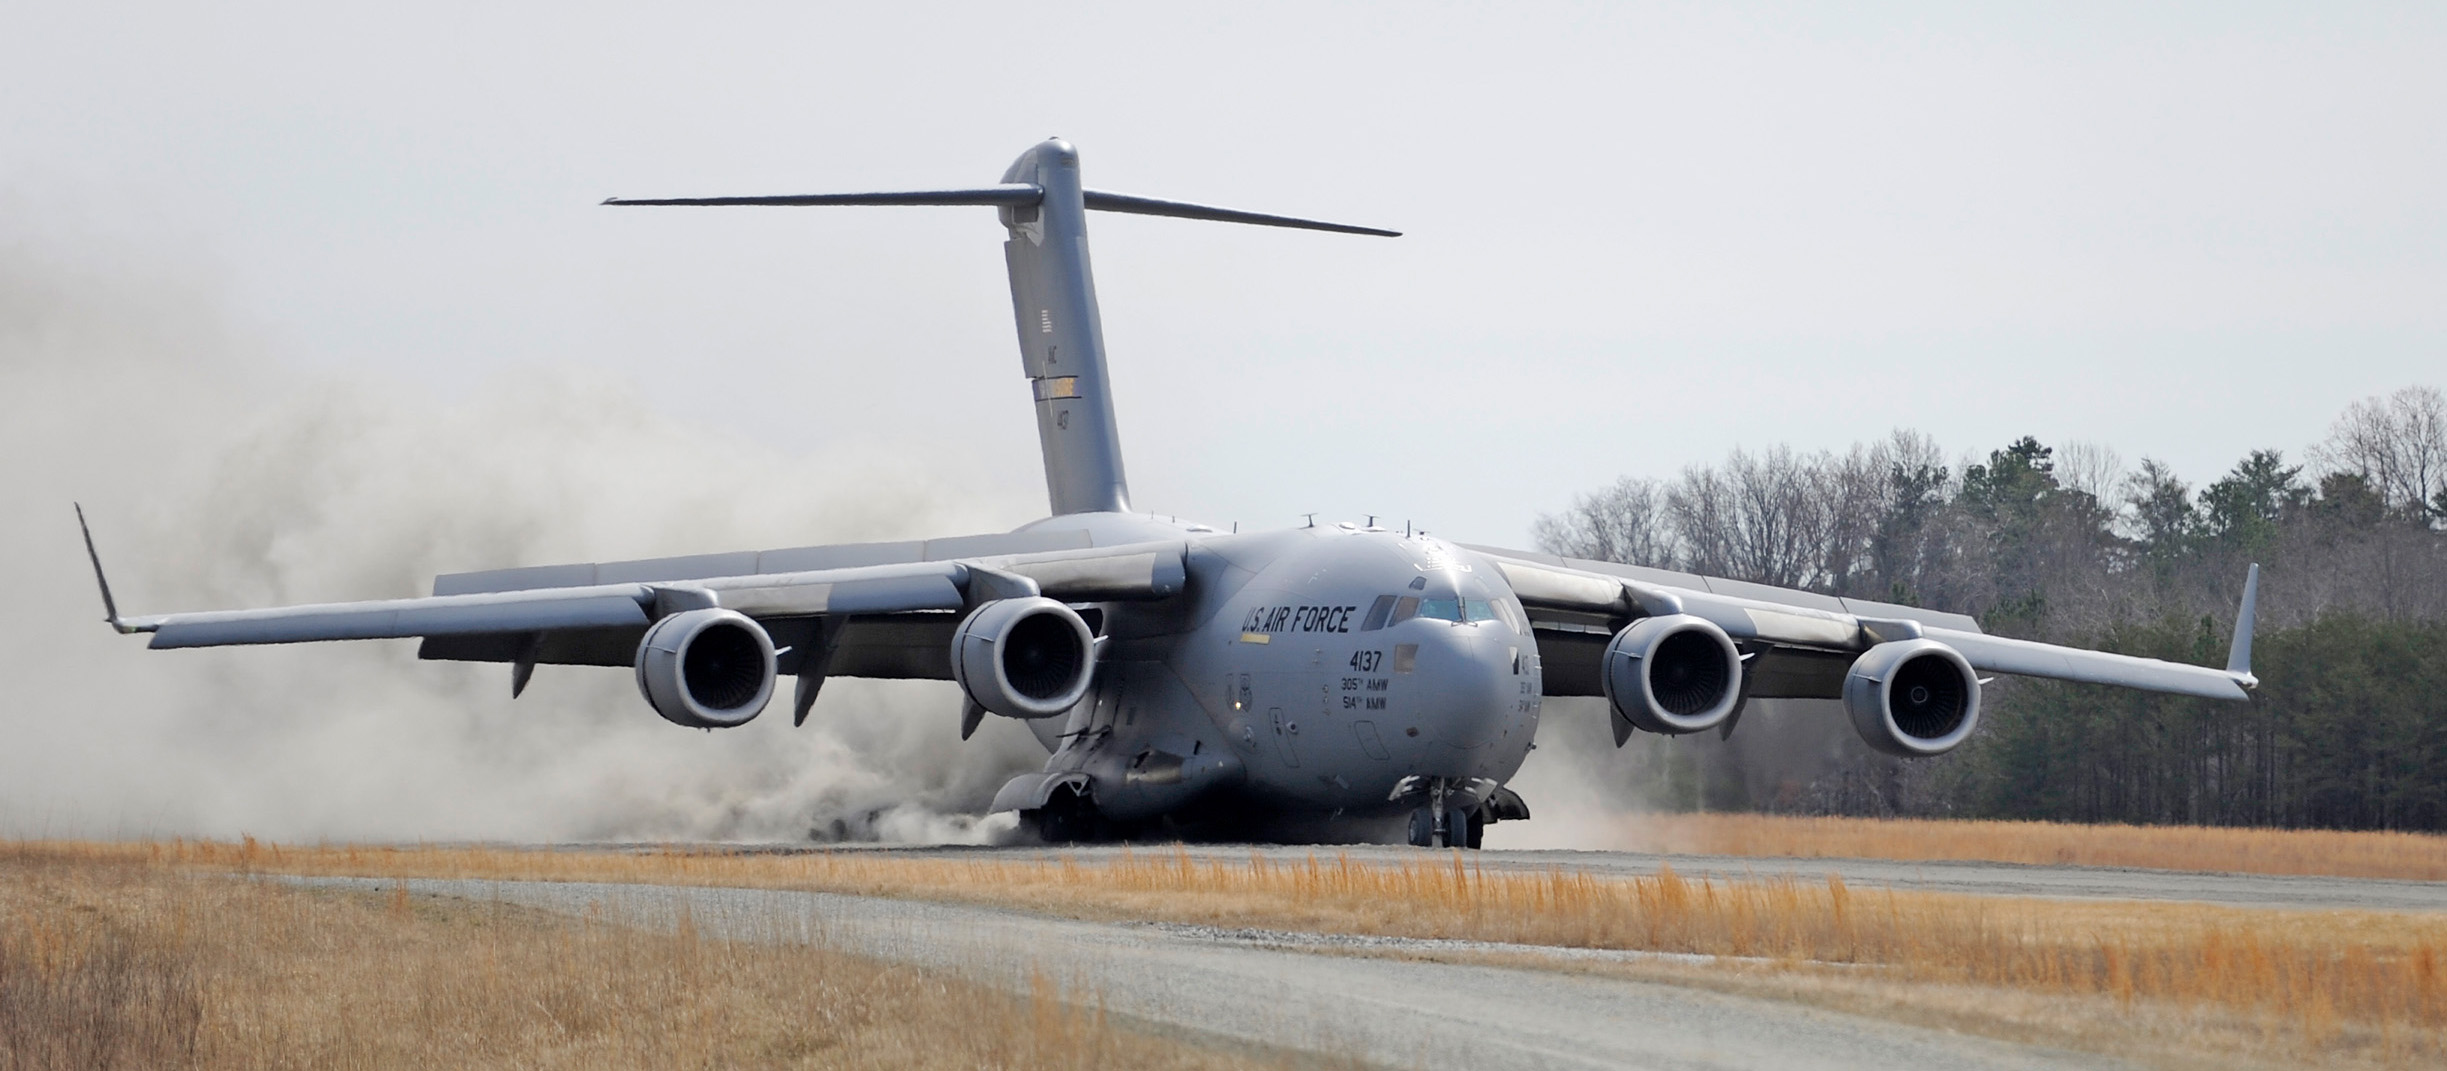 U.S. Air Force C-17 Globemaster III aircraft practice landings at austere airfields